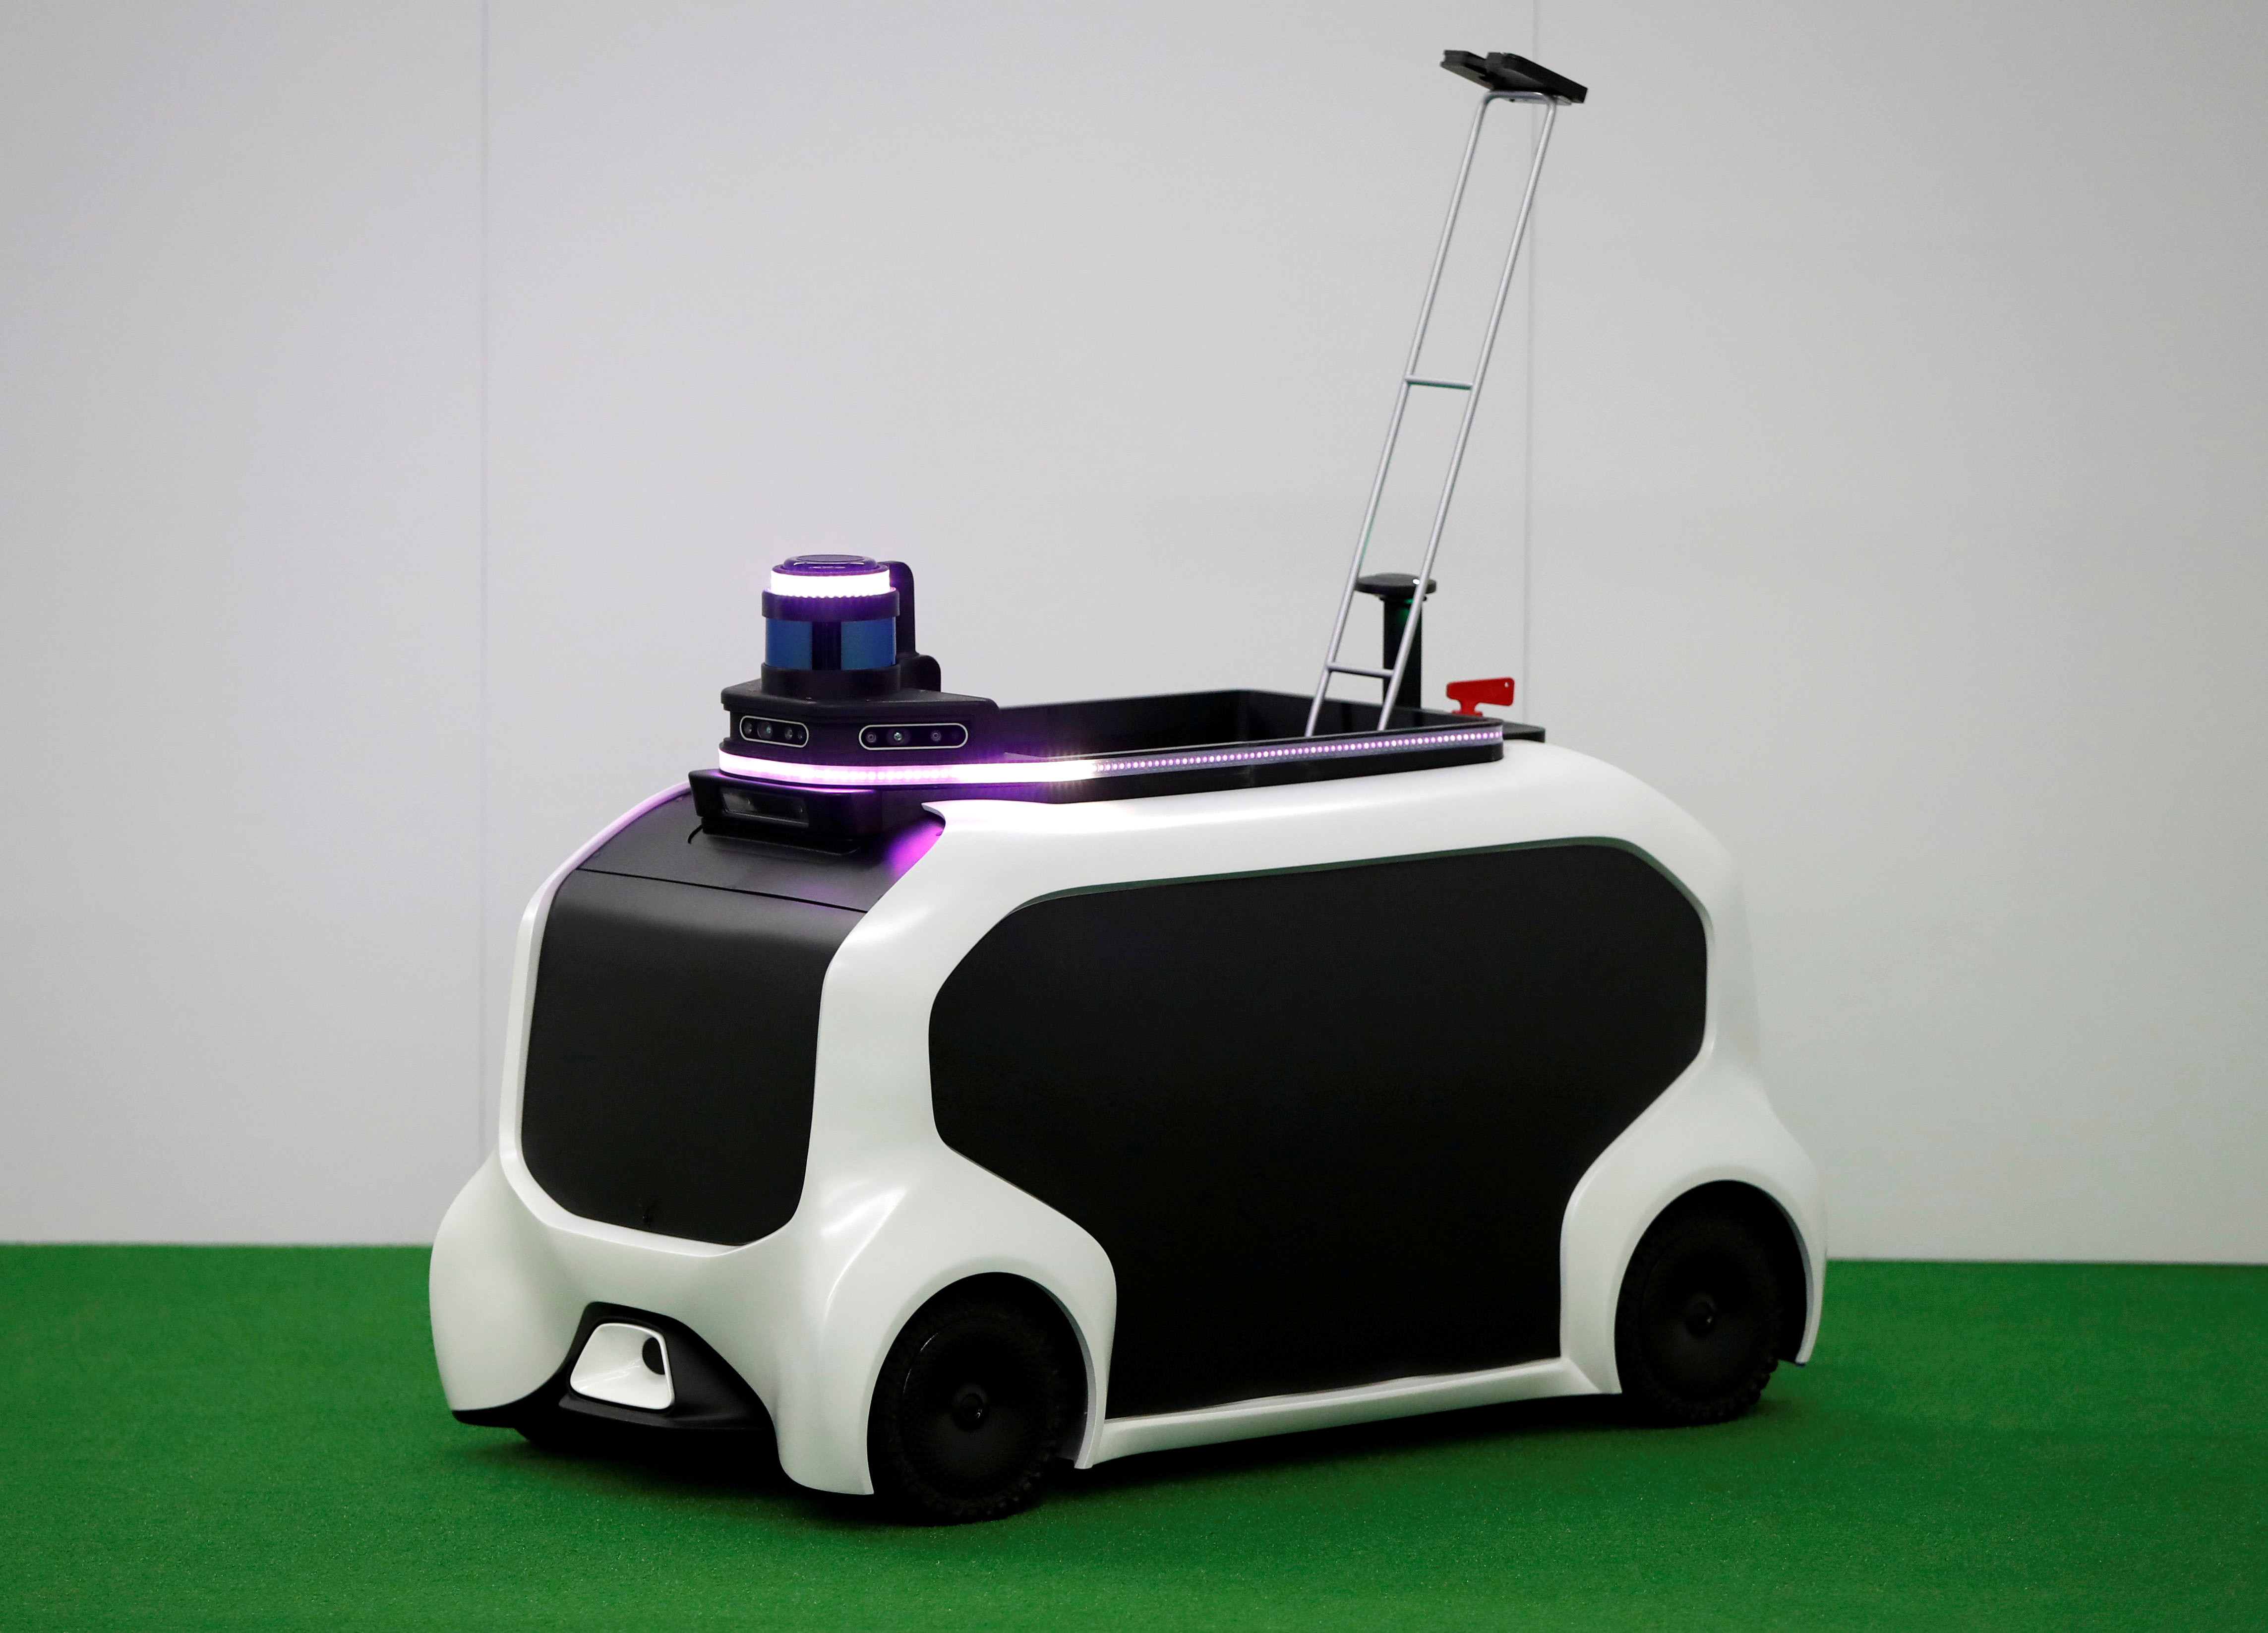 Toyota Motor Corp. demonstrates FRS field event support robot which will be used to support the Tokyo 2020 Olympic and Paralympic Games, during a press preview in Tokyo, Japan July 18, 2019. Picture taken July 18, 2019.  REUTERS/Issei Kato - RC1A9C6F9000